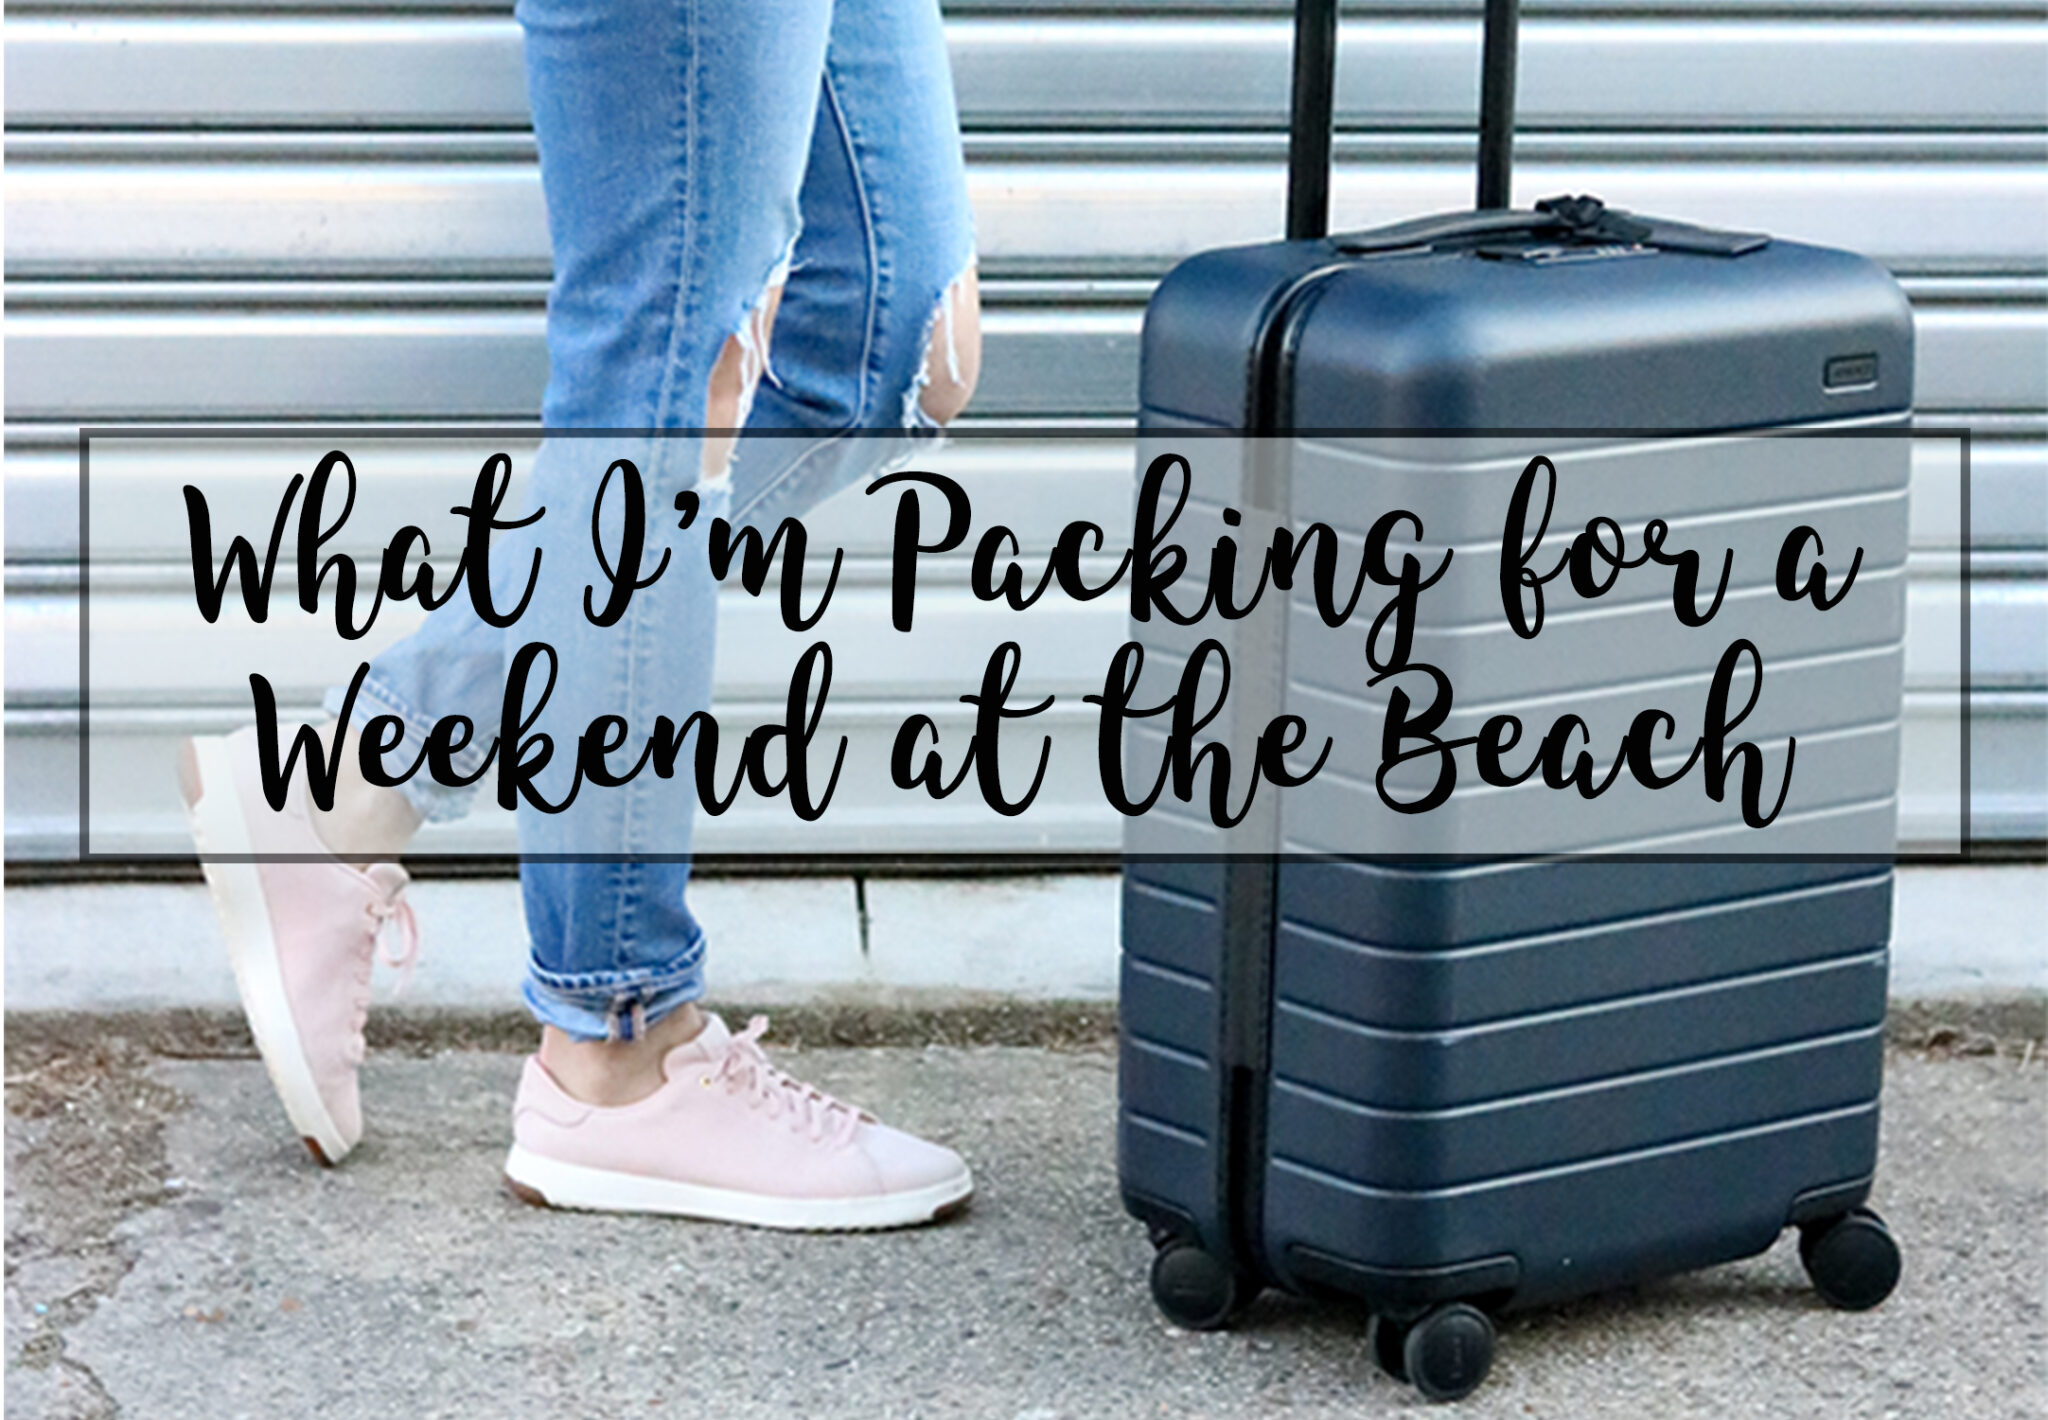 What I'm Packing for a Weekend at the Beach